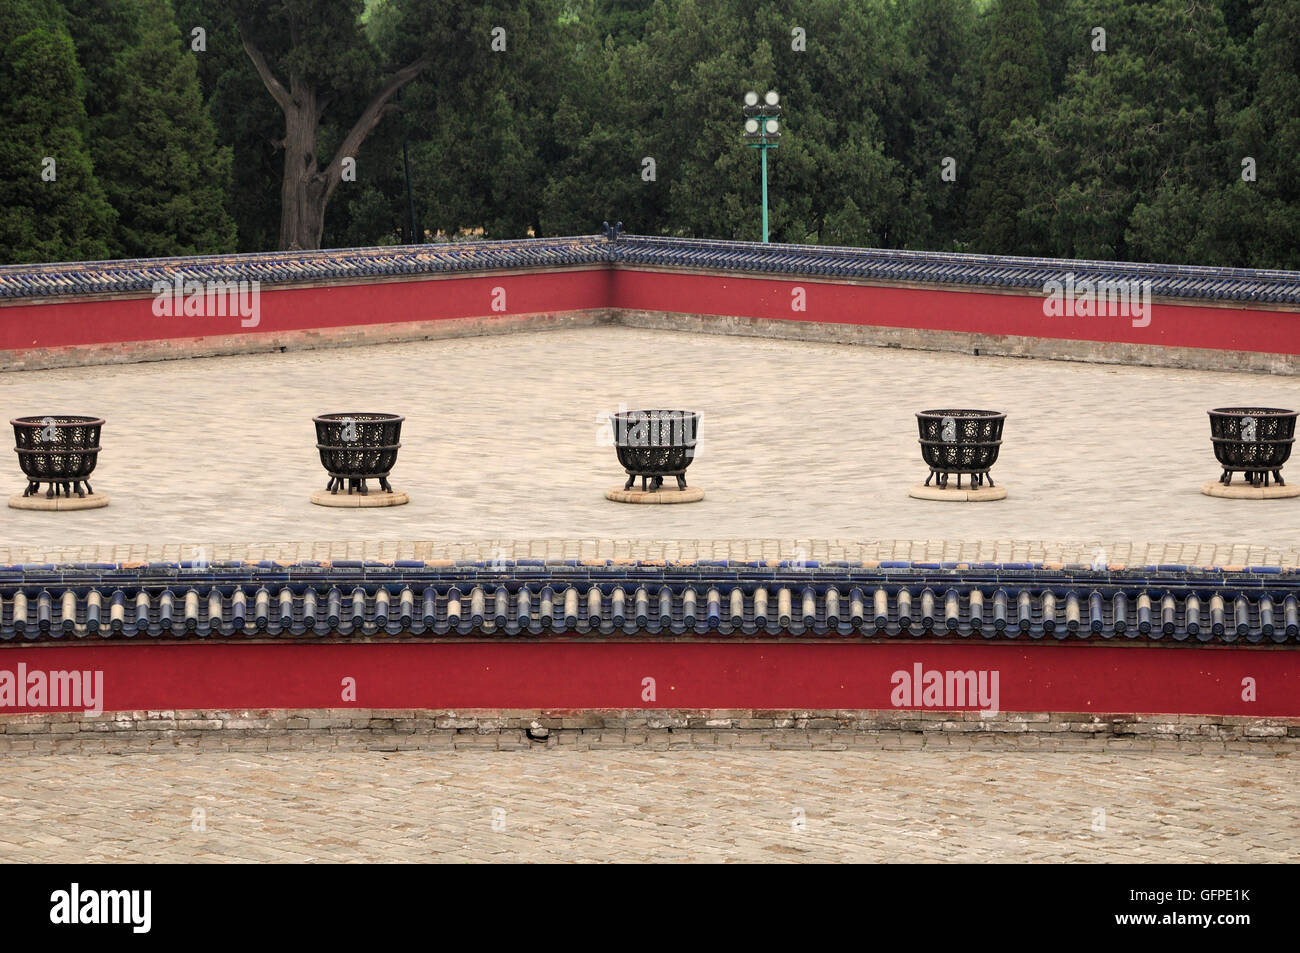 Fire pits and walls surrounding the Lingxing Gates located in Tiantan Park or temple of heaven scenic area in Beijing China. Stock Photo